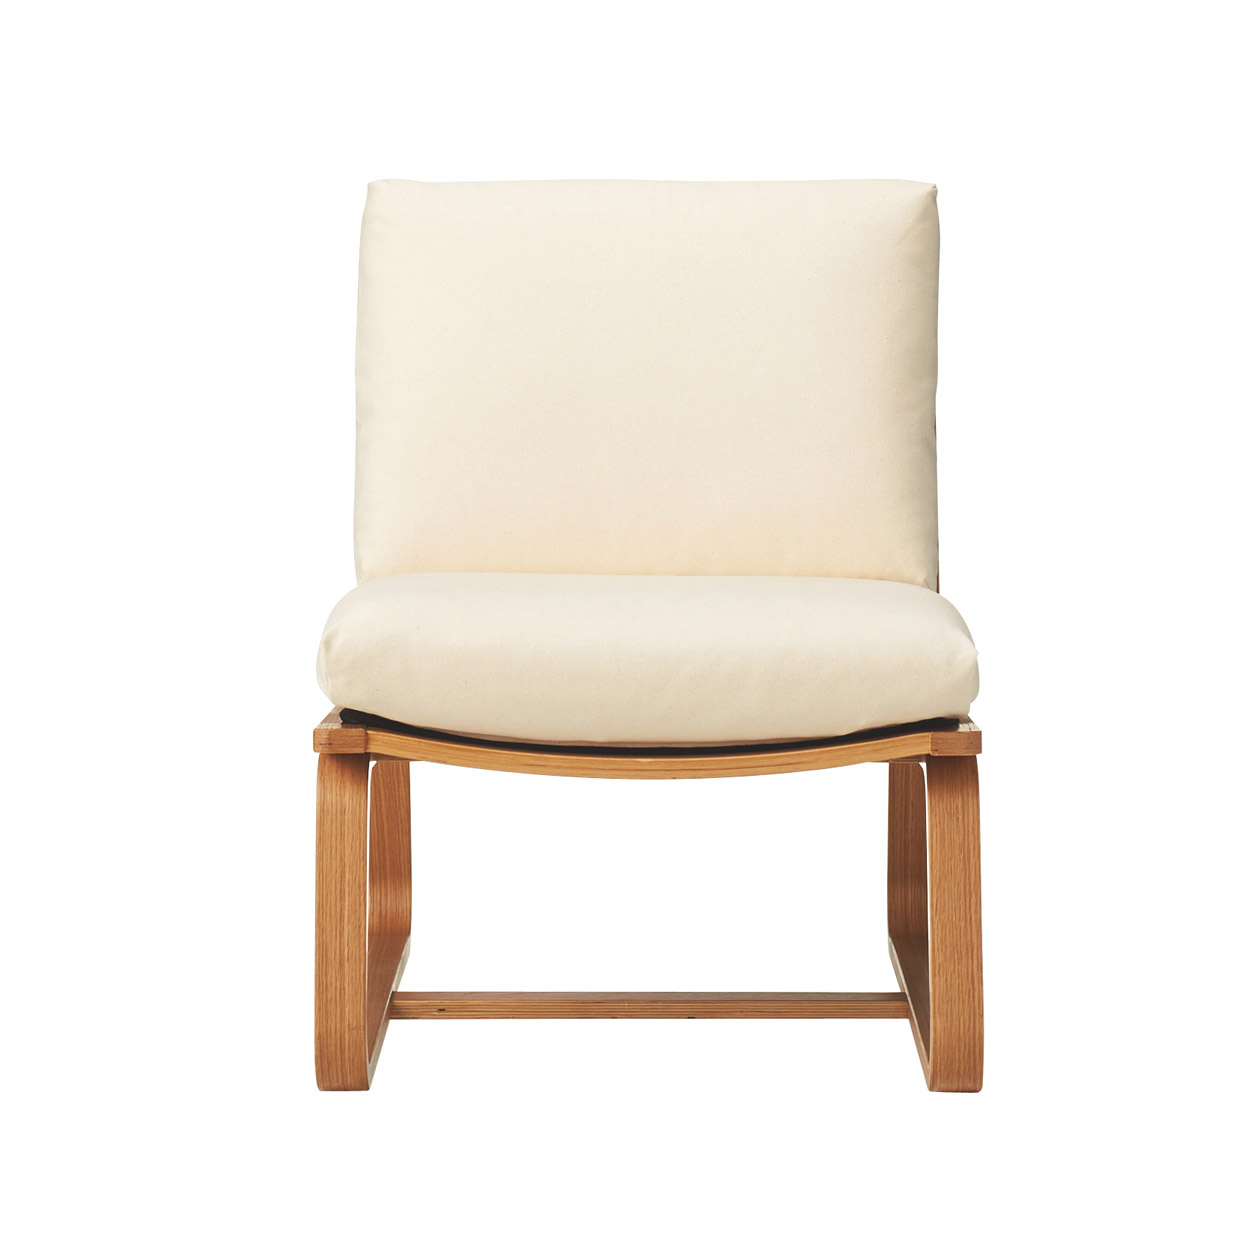 muji office chair. Oak Wood Living Dining Chair Muji Office